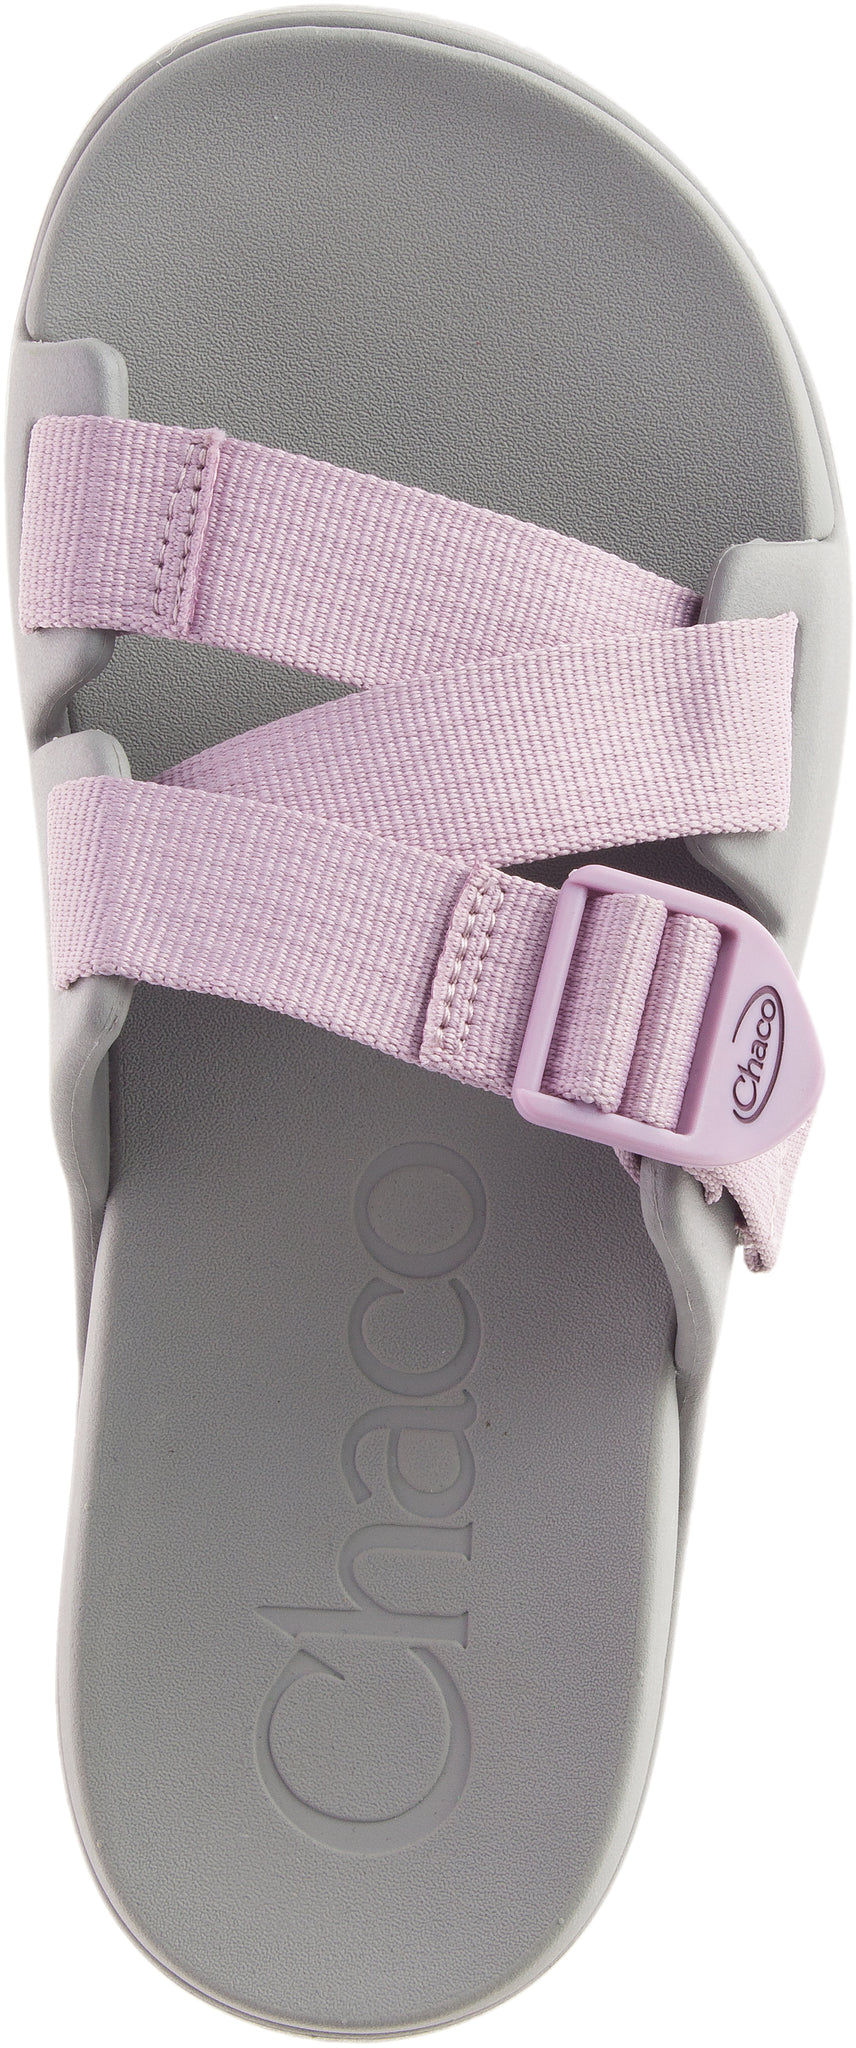 W Chillos Slide- Solid Mauve